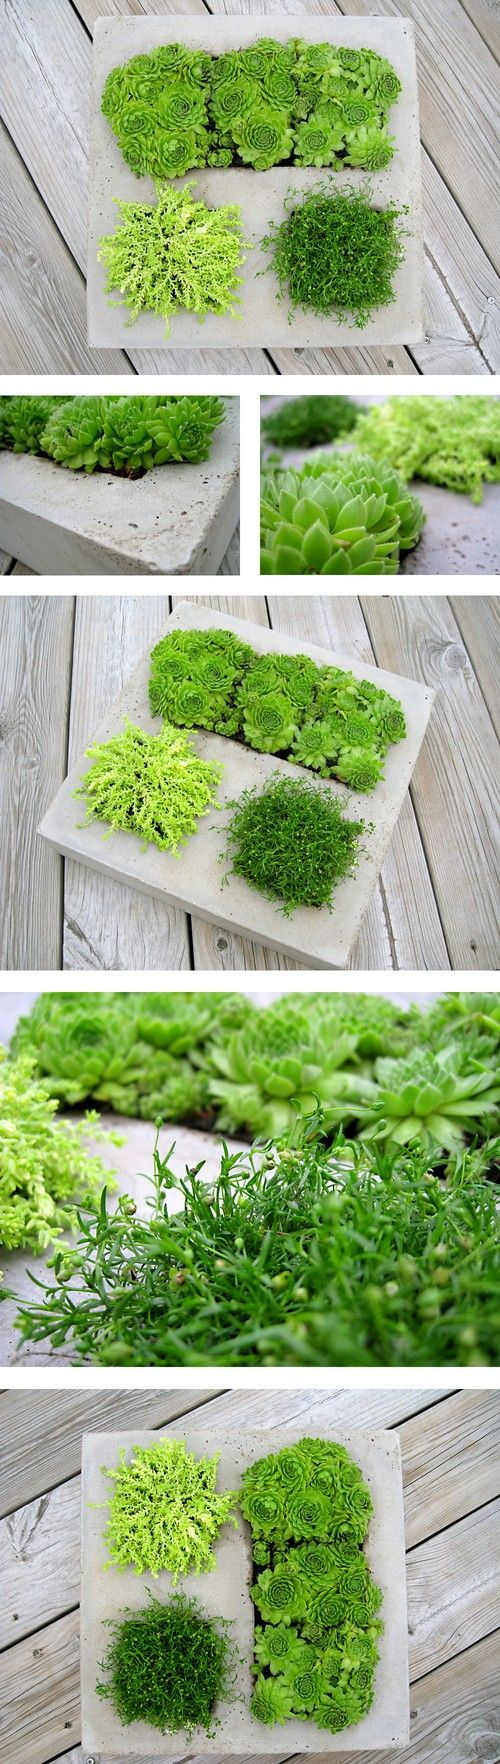 diy-modern-and-concrete-planters-10